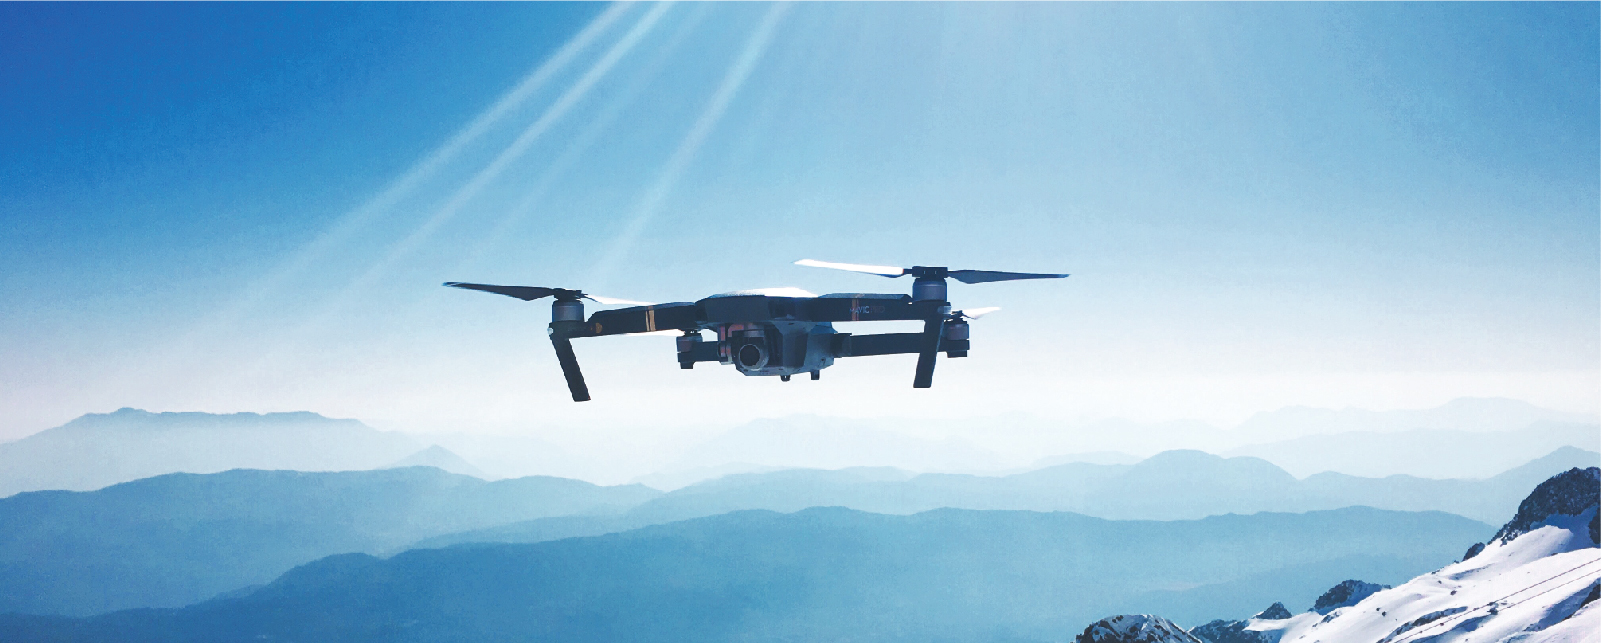 What are drones and what are they used for?